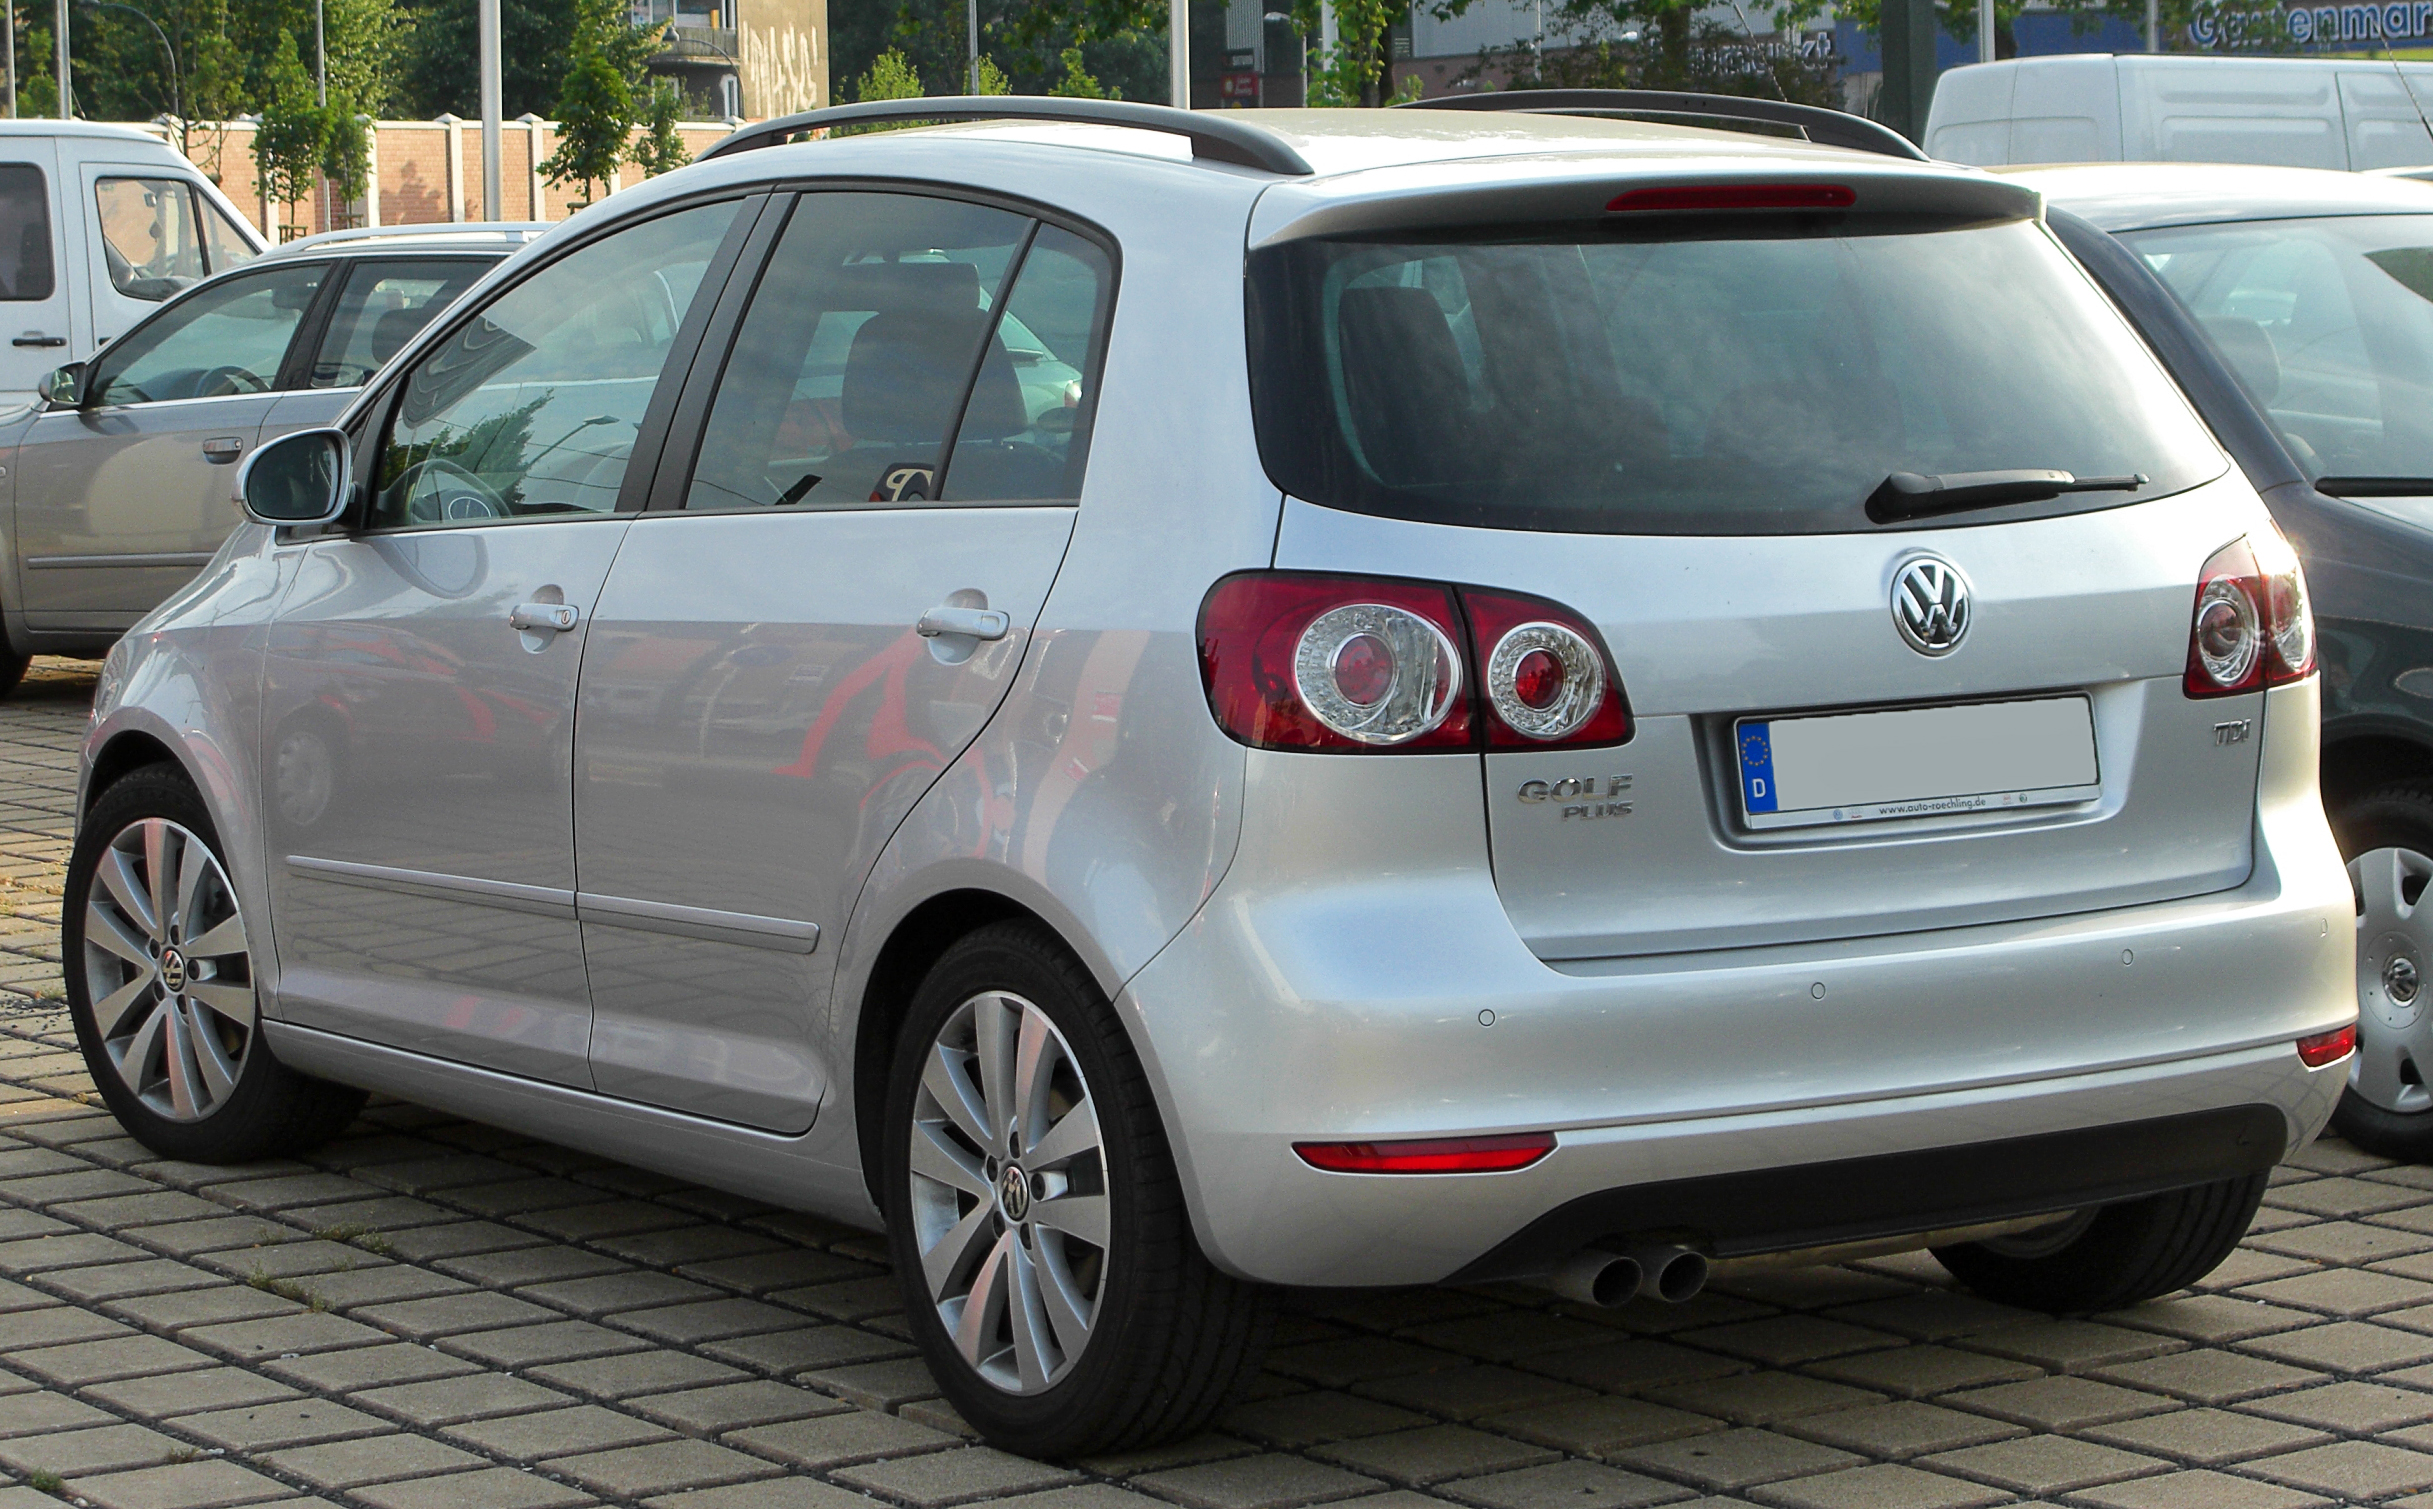 File:VW Golf Plus 2.0 TDI Facelift rear 20100710.jpg ...